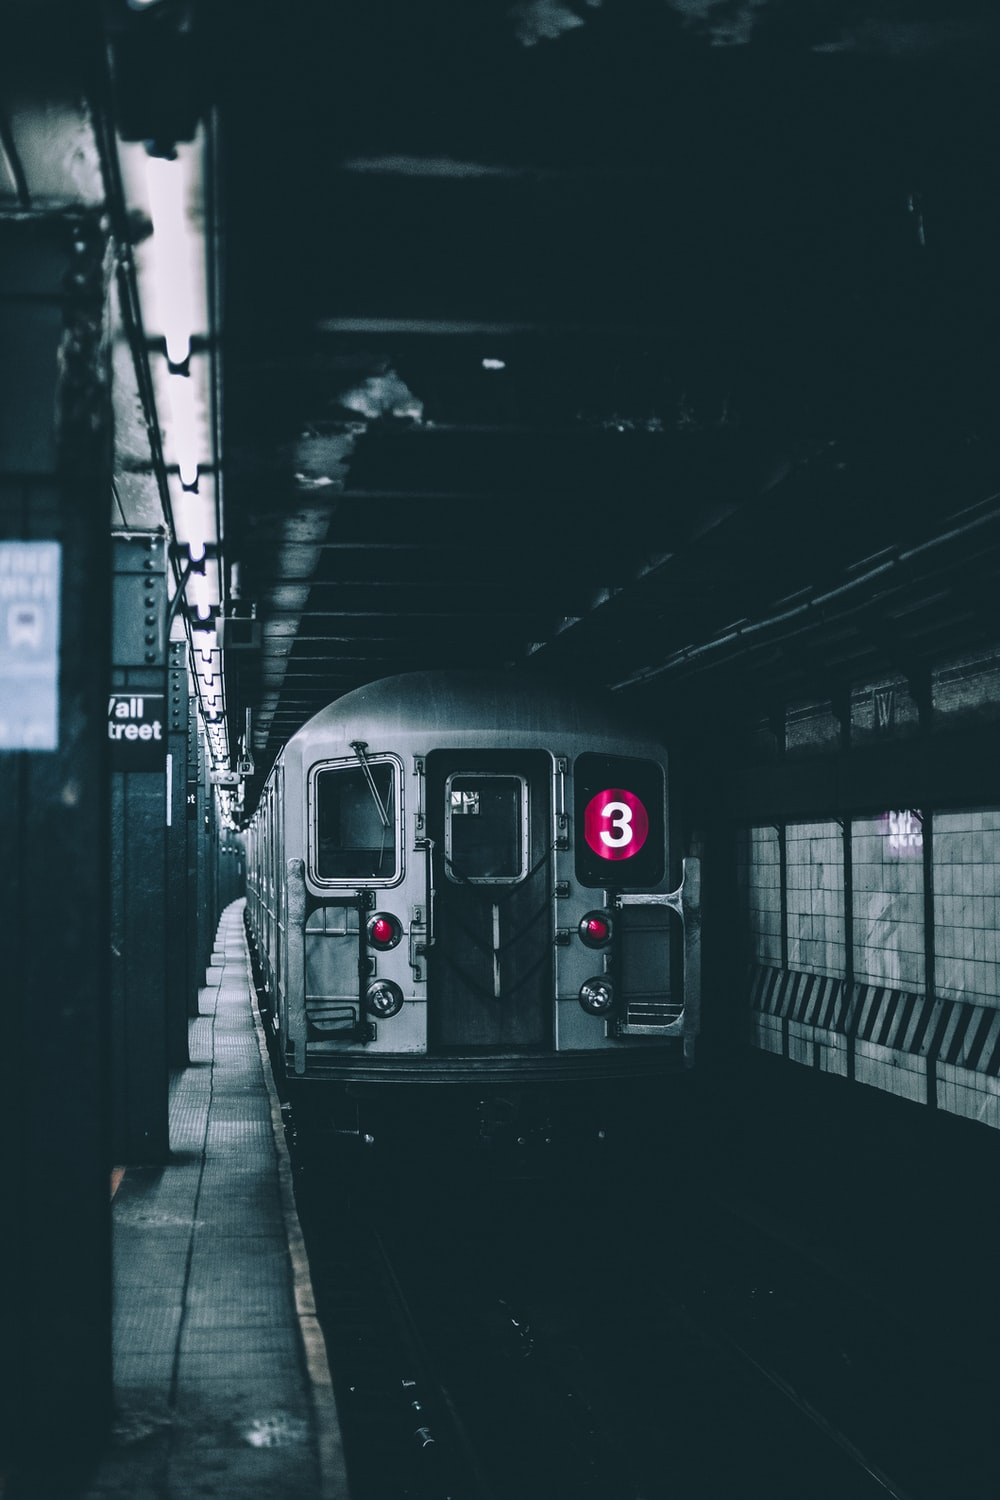 selective color photo of a subway station with train